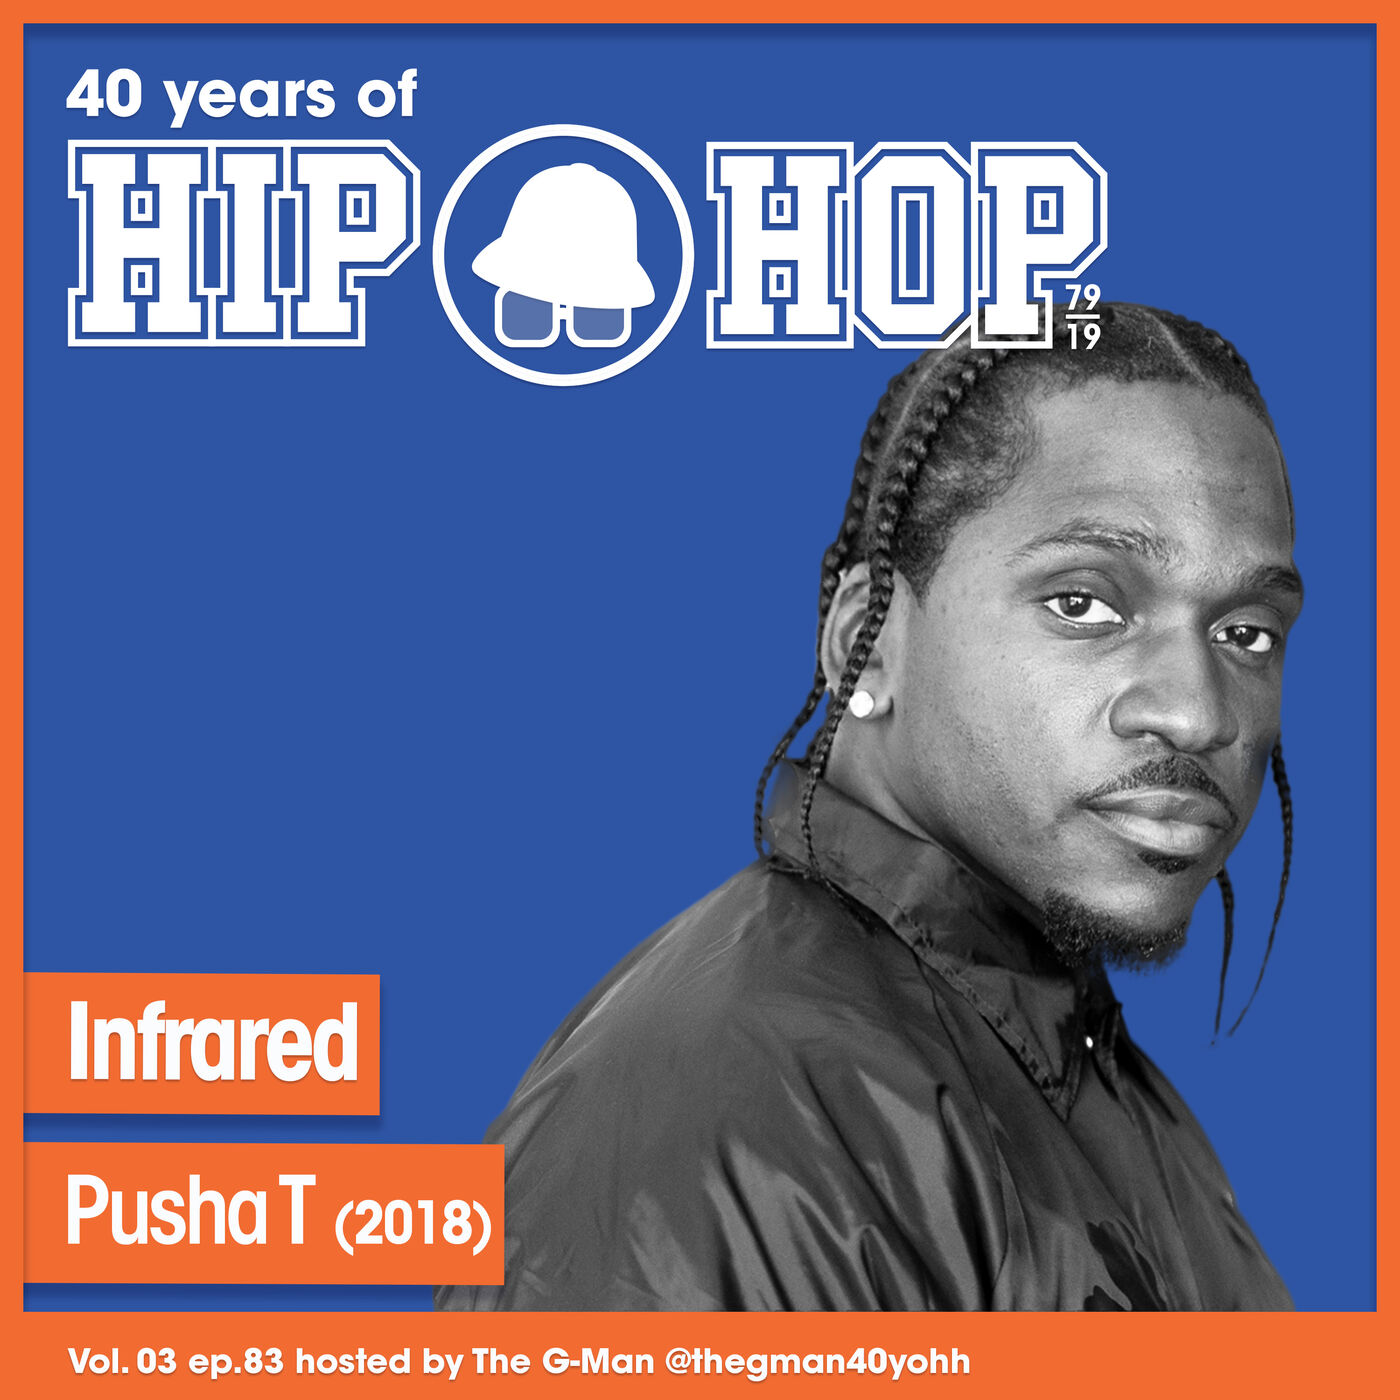 Vol.03 E83 - Infrared by Pusha T released in 2018 - 40 Years of Hip Hop